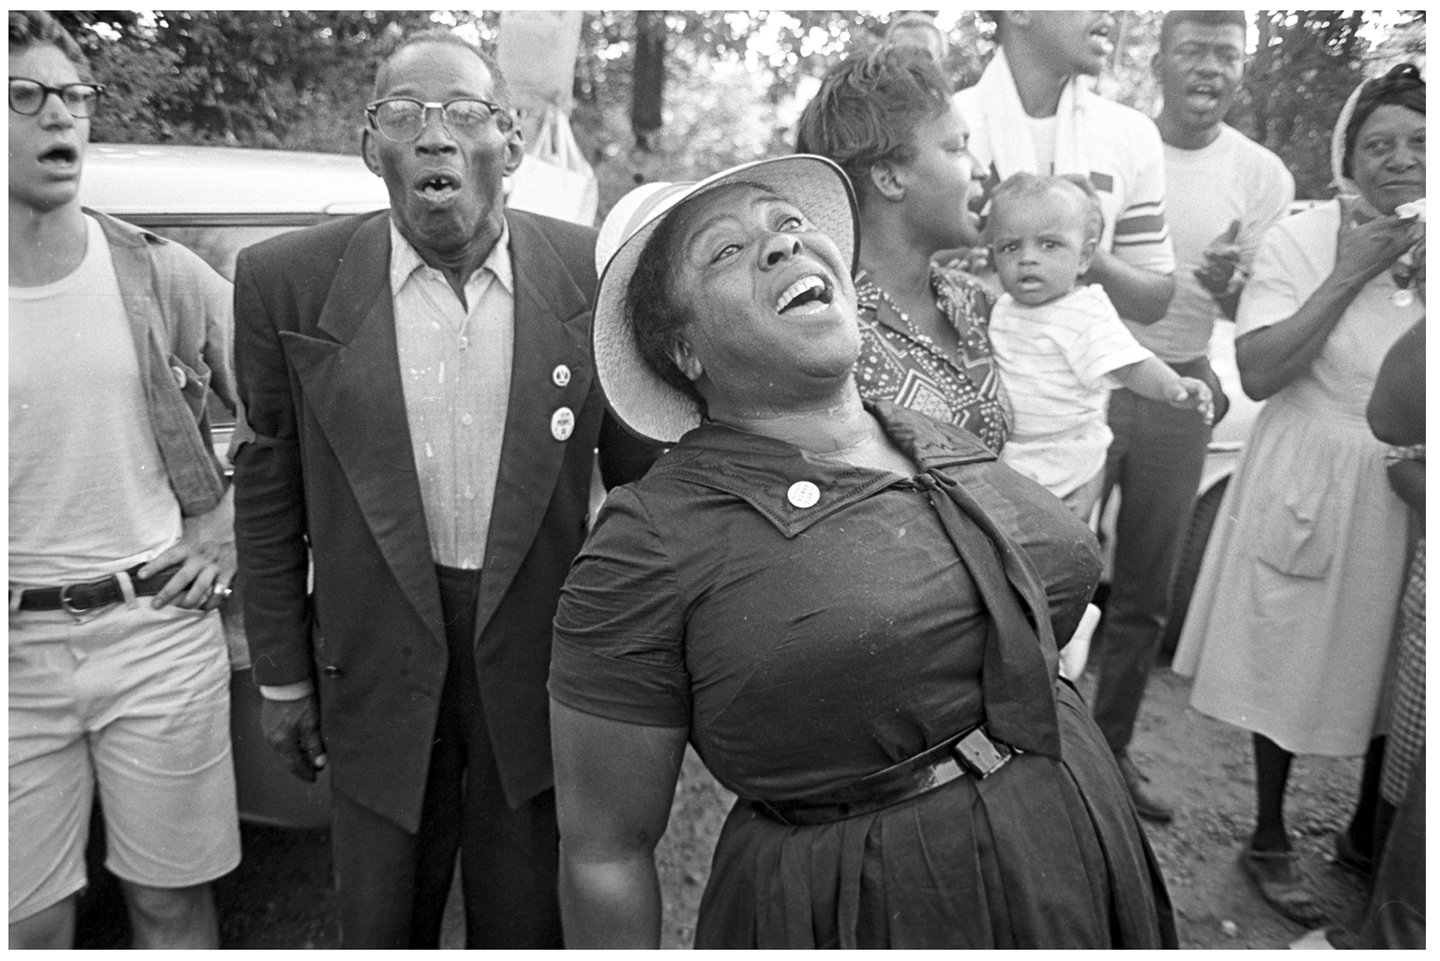 Fannie Lou Hamer inspires tired protestors with her singing during the March Against Fear in June 1966. Photo by Jim Peppler, courtesy Alabama Department of Archives and History